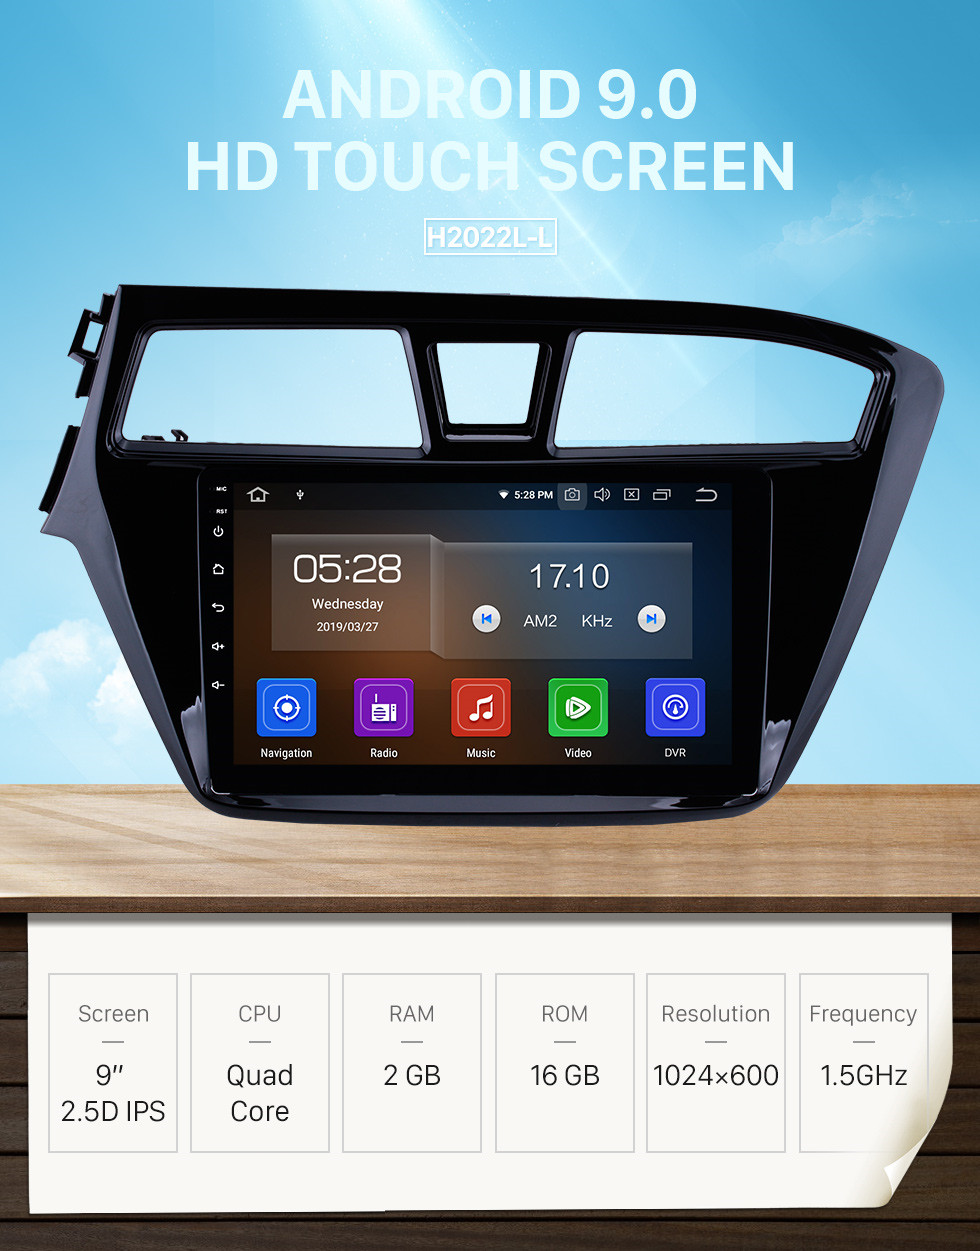 Seicane 9 inch HD Touchscreen Android 9.0 GPS Navigation System Bluetooth WIFI For 2014 2015 Hyundai I20 Support USB Rear View Camera DVR OBD II 1080P Video TPMS